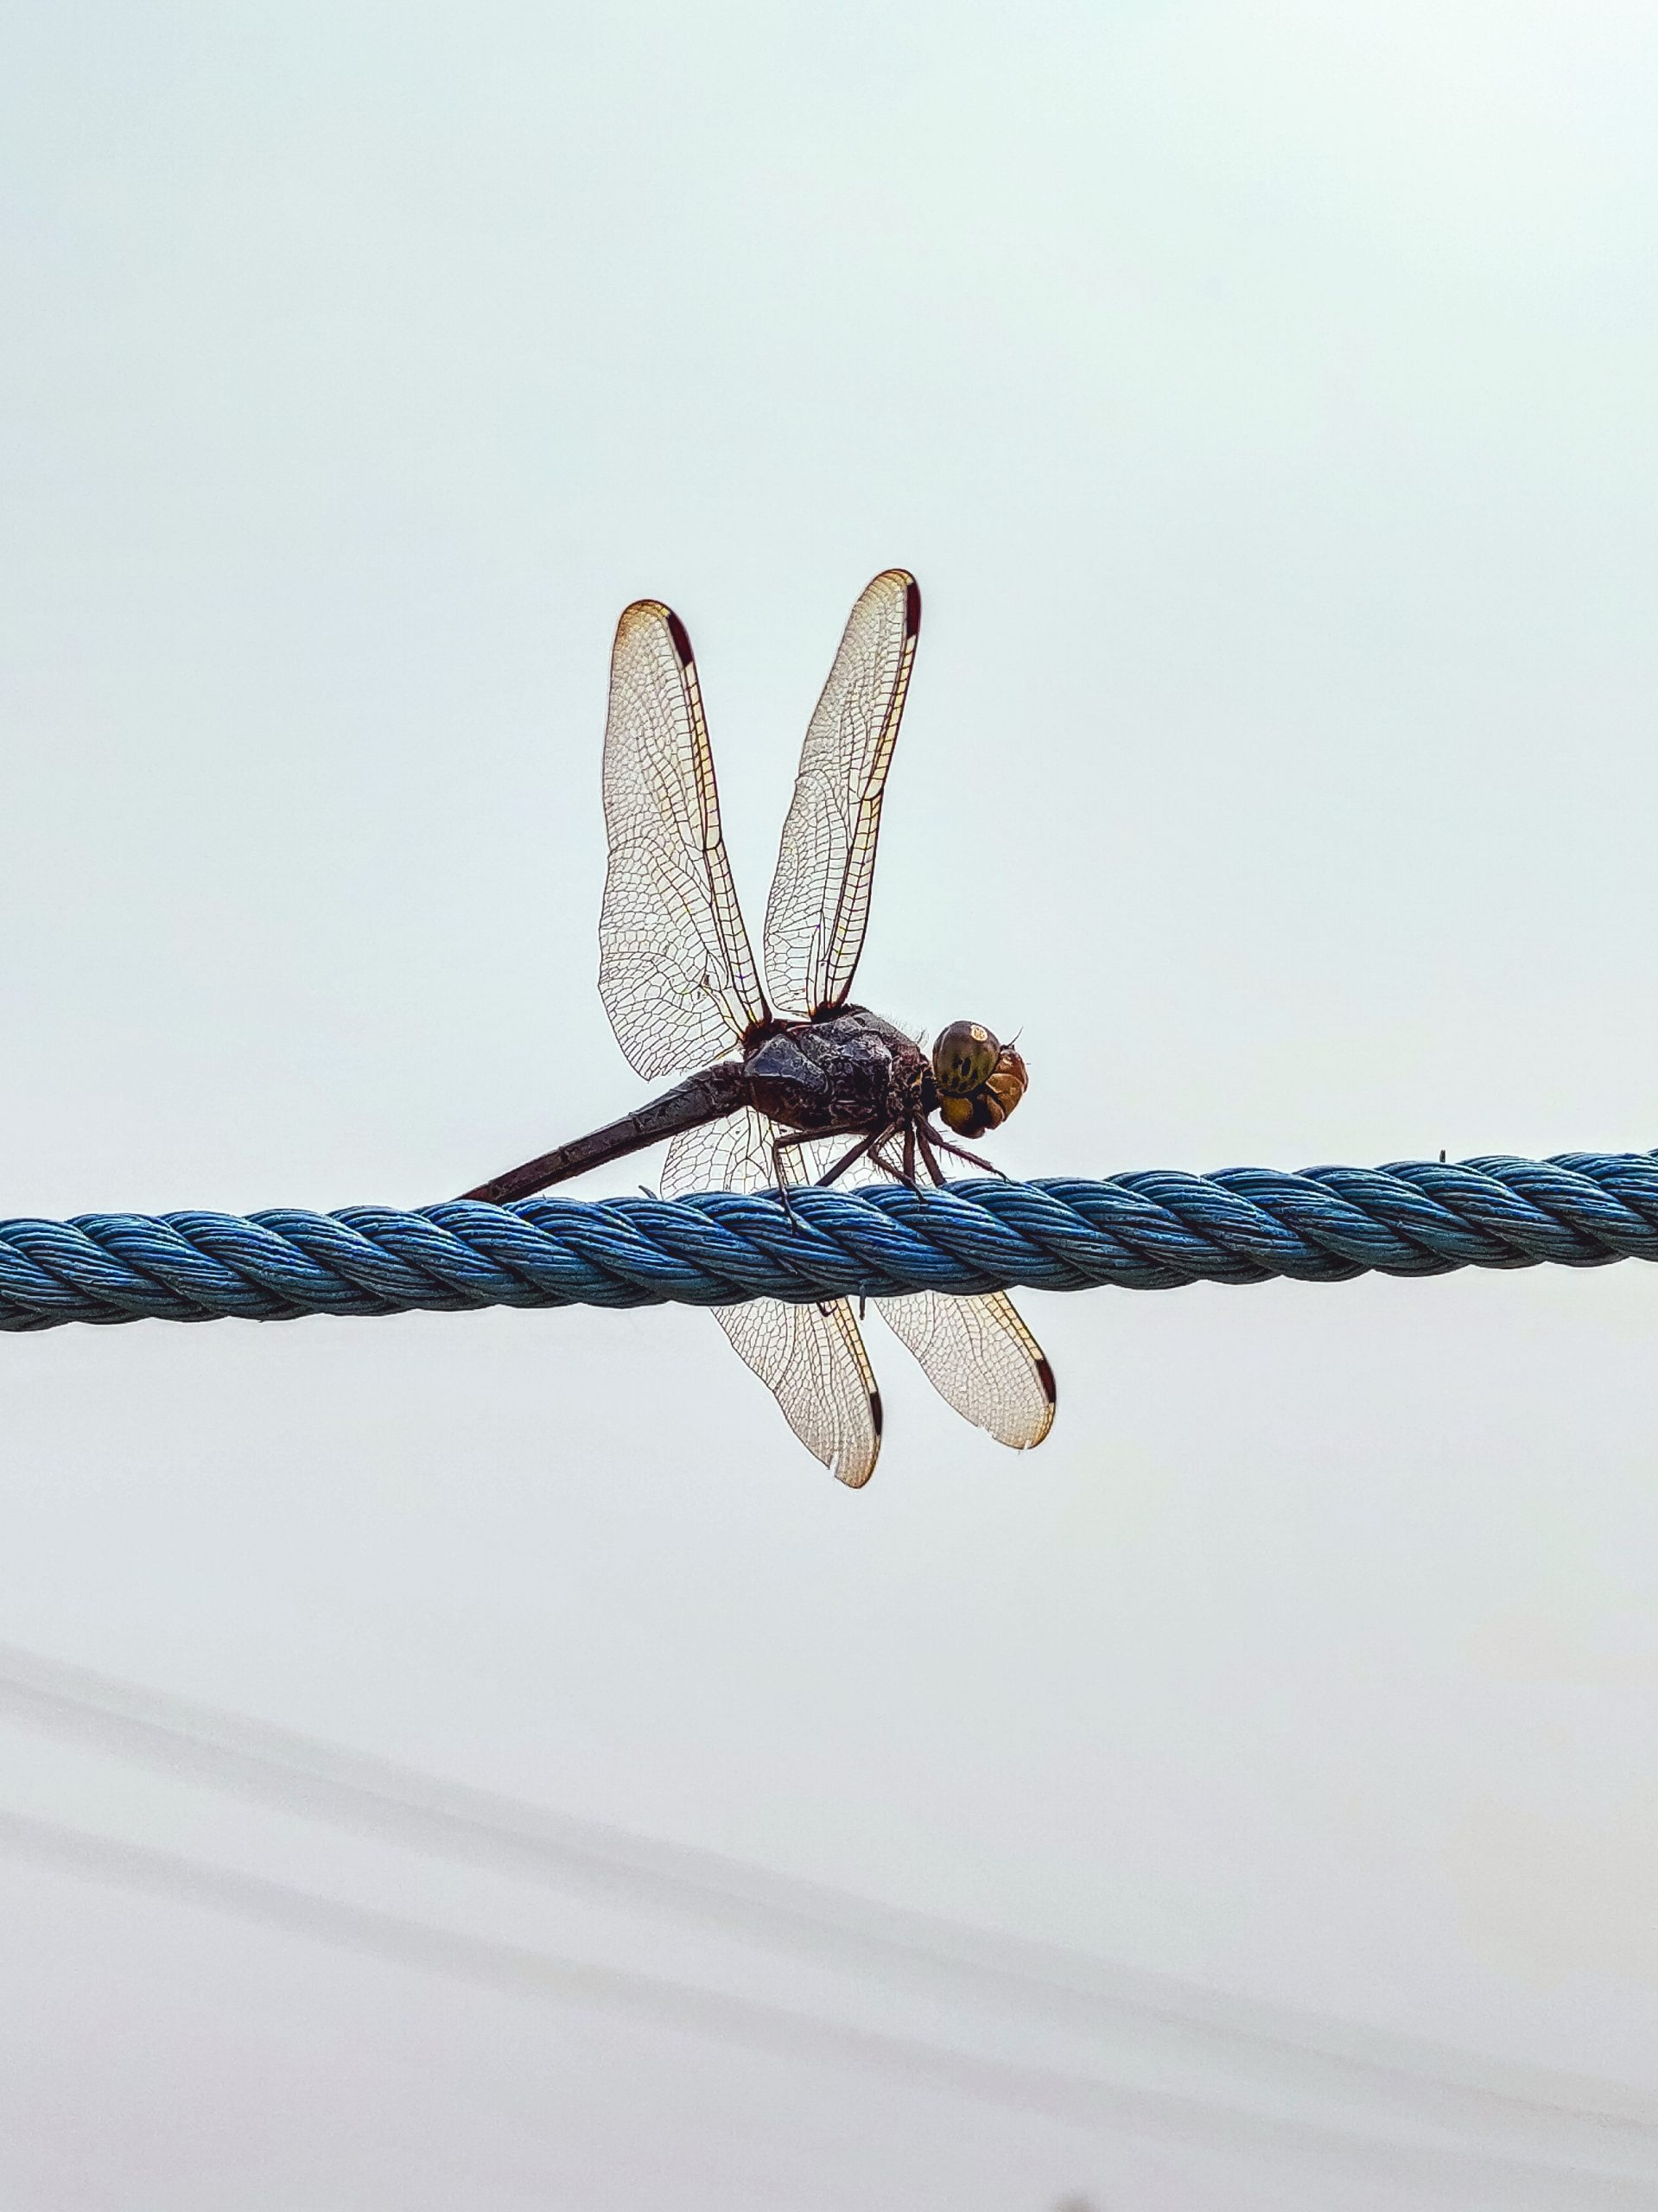 A dragonfly sitting on a rope